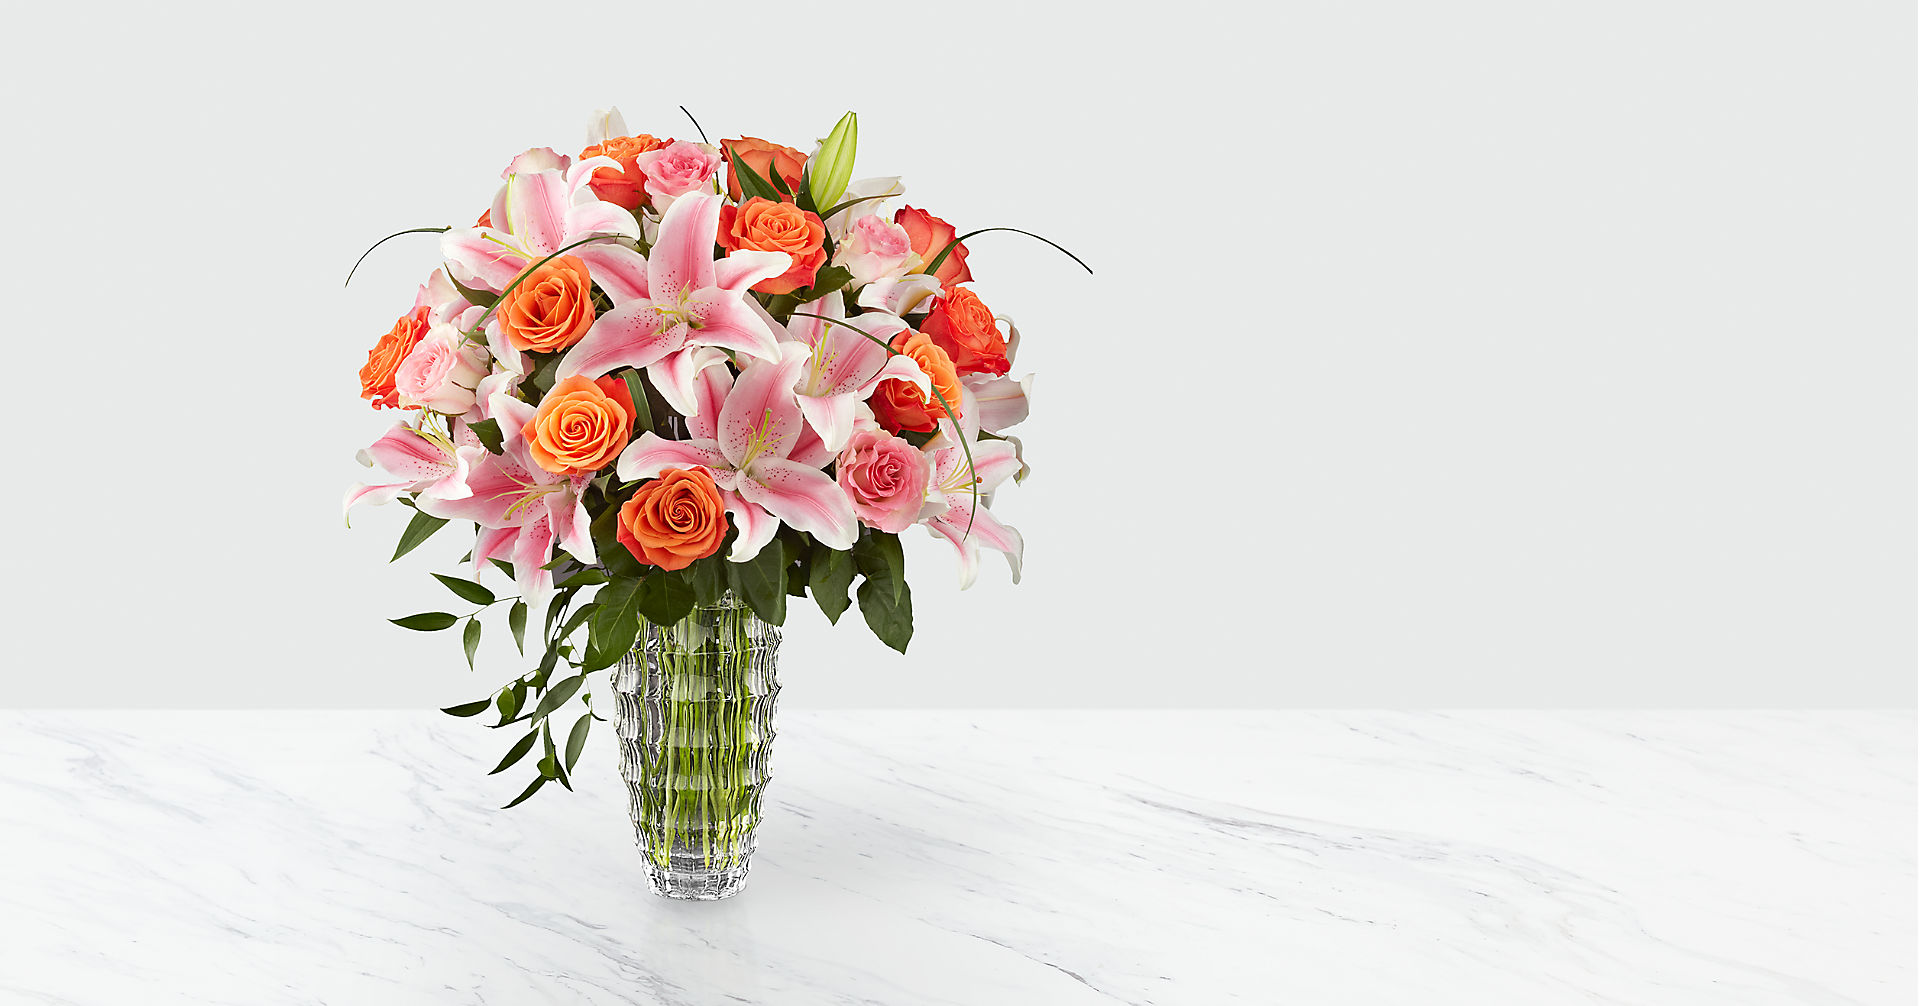 Sweetly Stunning™ Luxury Bouquet - Image 1 Of 4